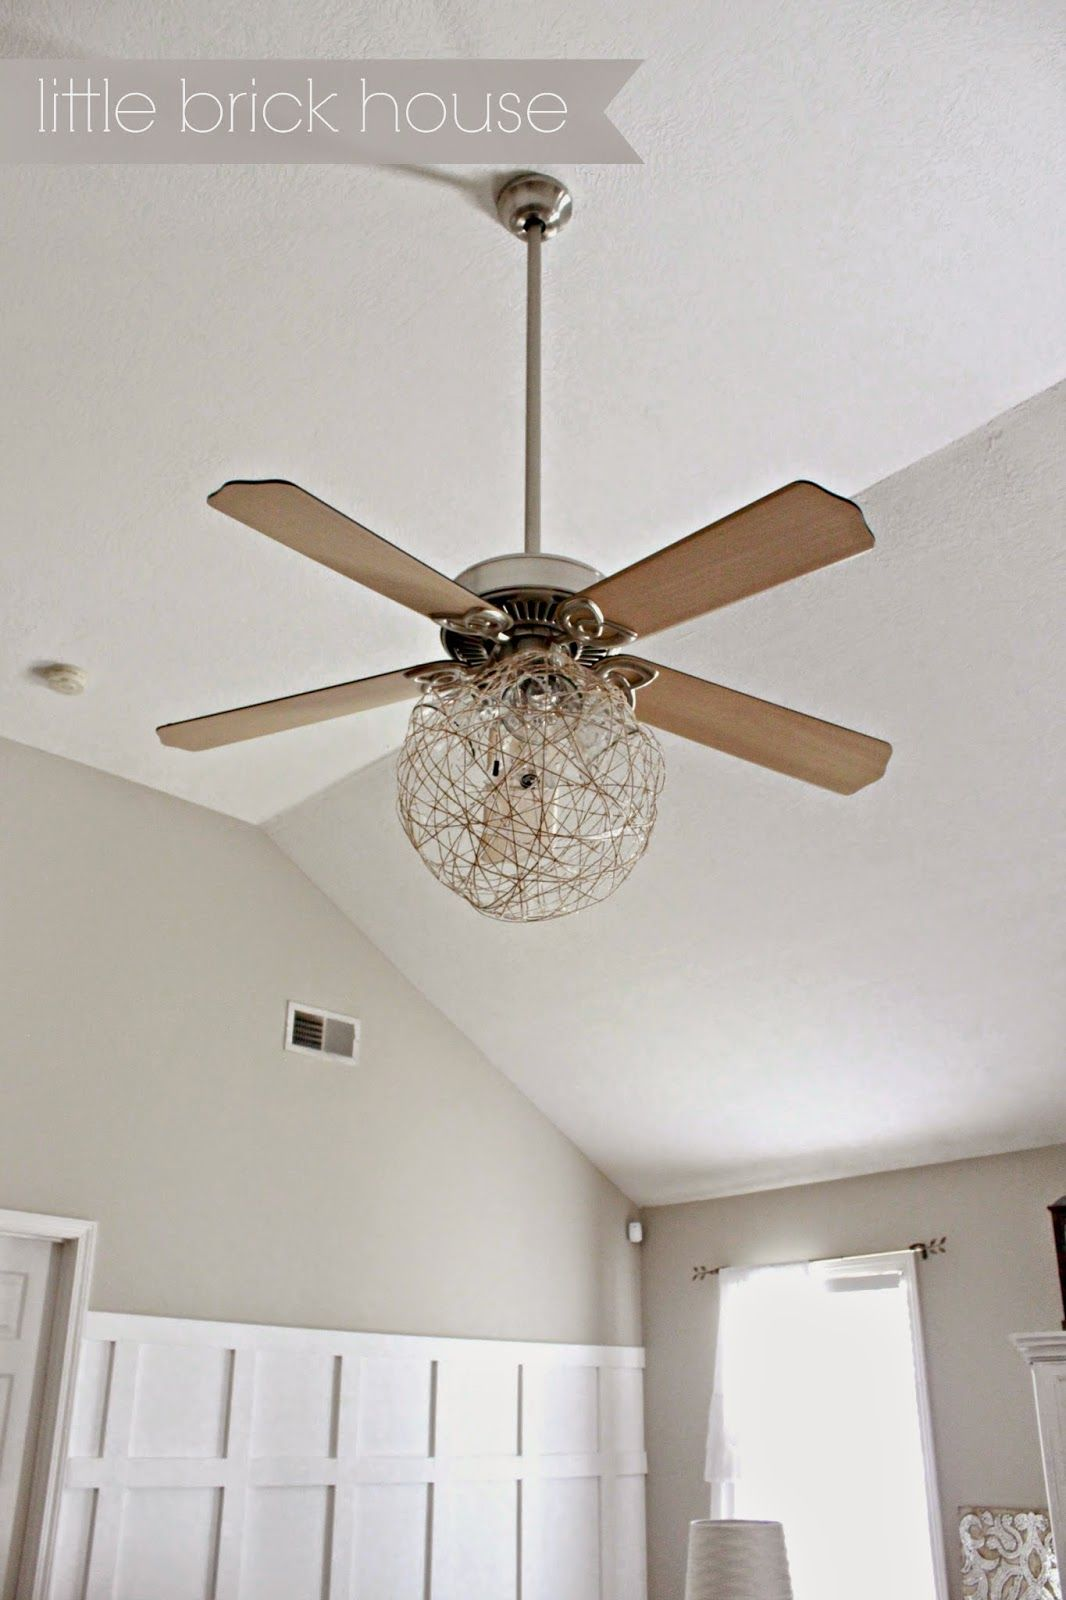 Little Brick House Ceiling Fan Makeover Lighting Ceiling Fan Makeover Ceiling Fan Ceiling Fan Blade Covers